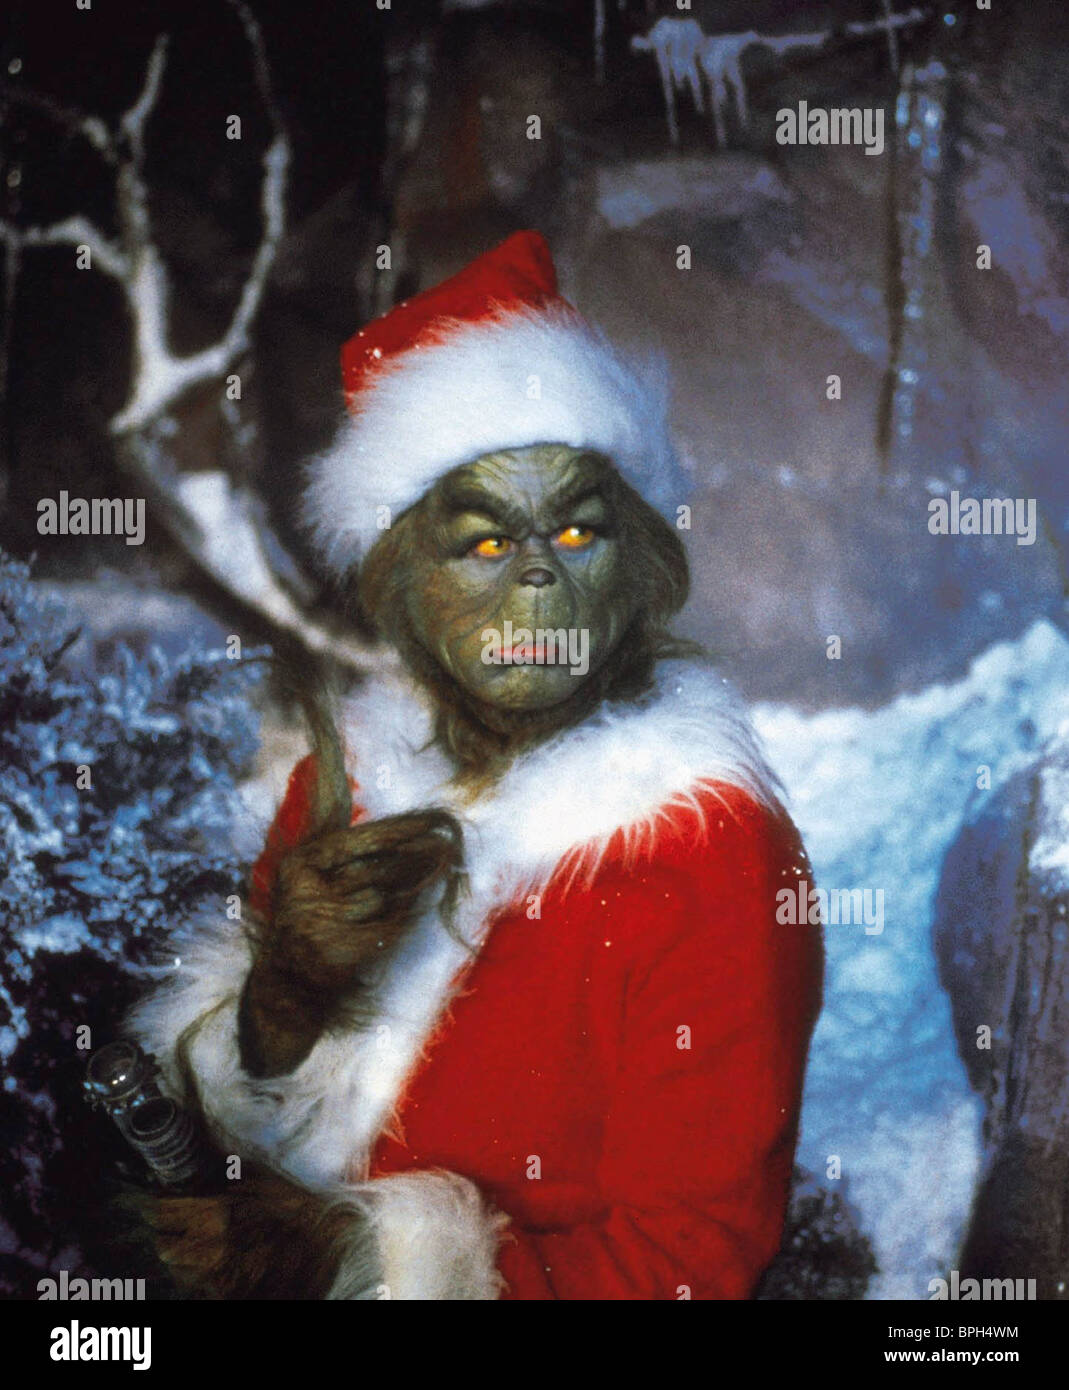 The Grinch Movie Stock Photos & The Grinch Movie Stock Images - Alamy